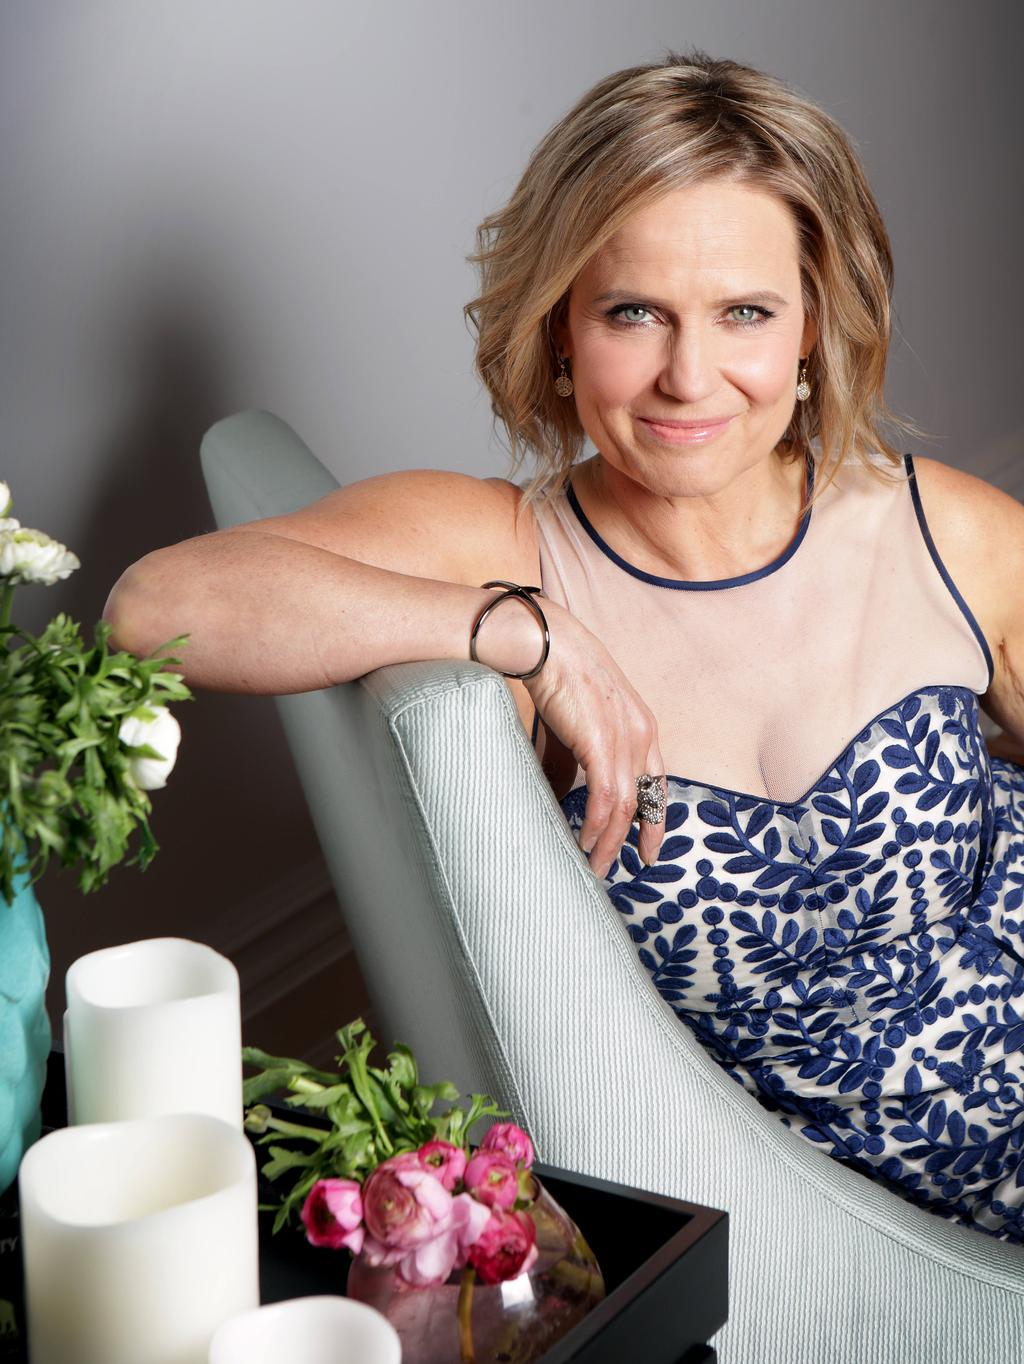 shaynna blaze knows a thing or two about colour